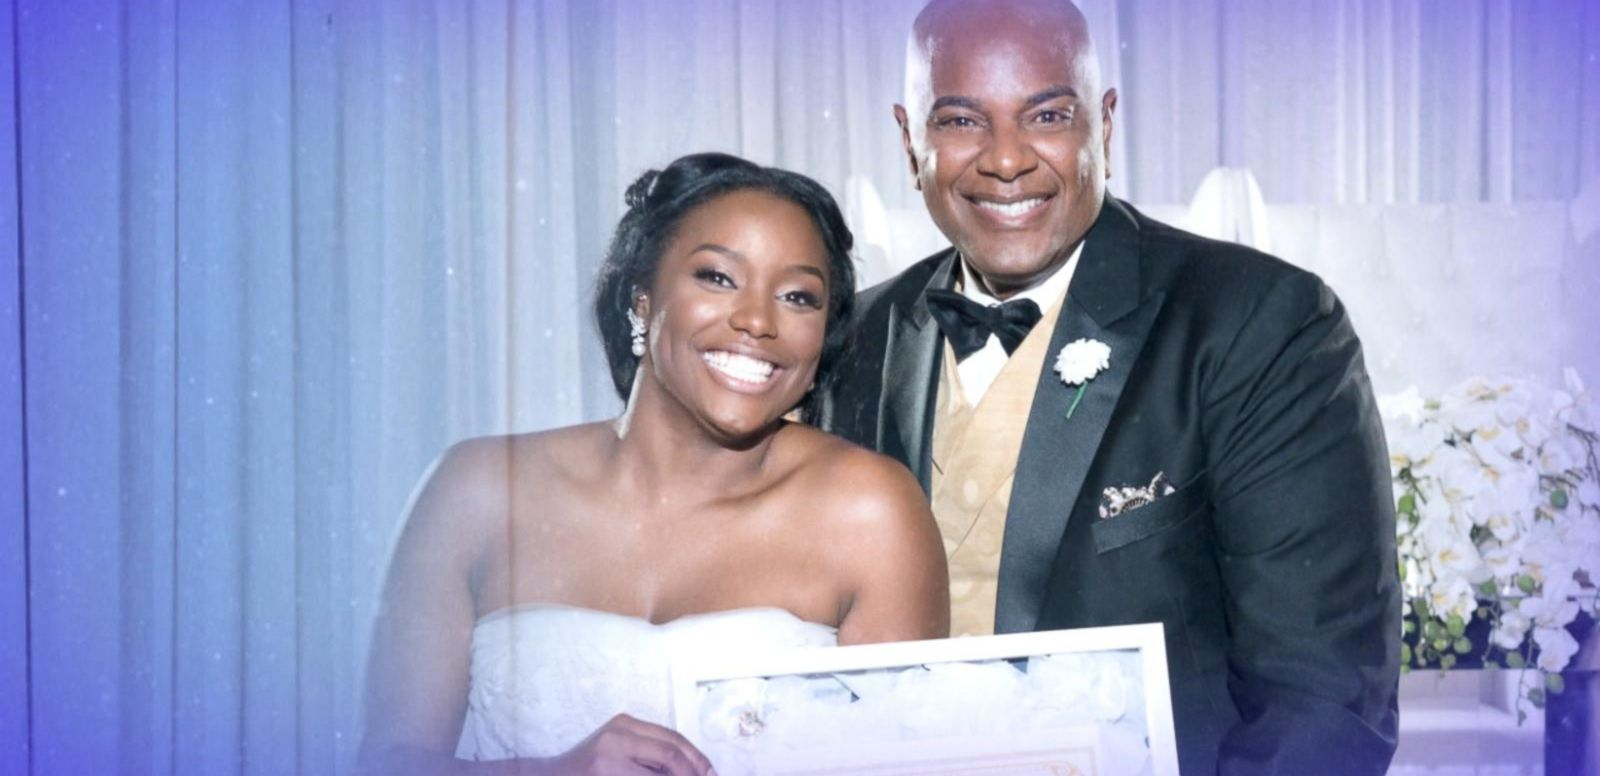 VIDEO: Bride Surprises Pastor Father With Purity Certificate